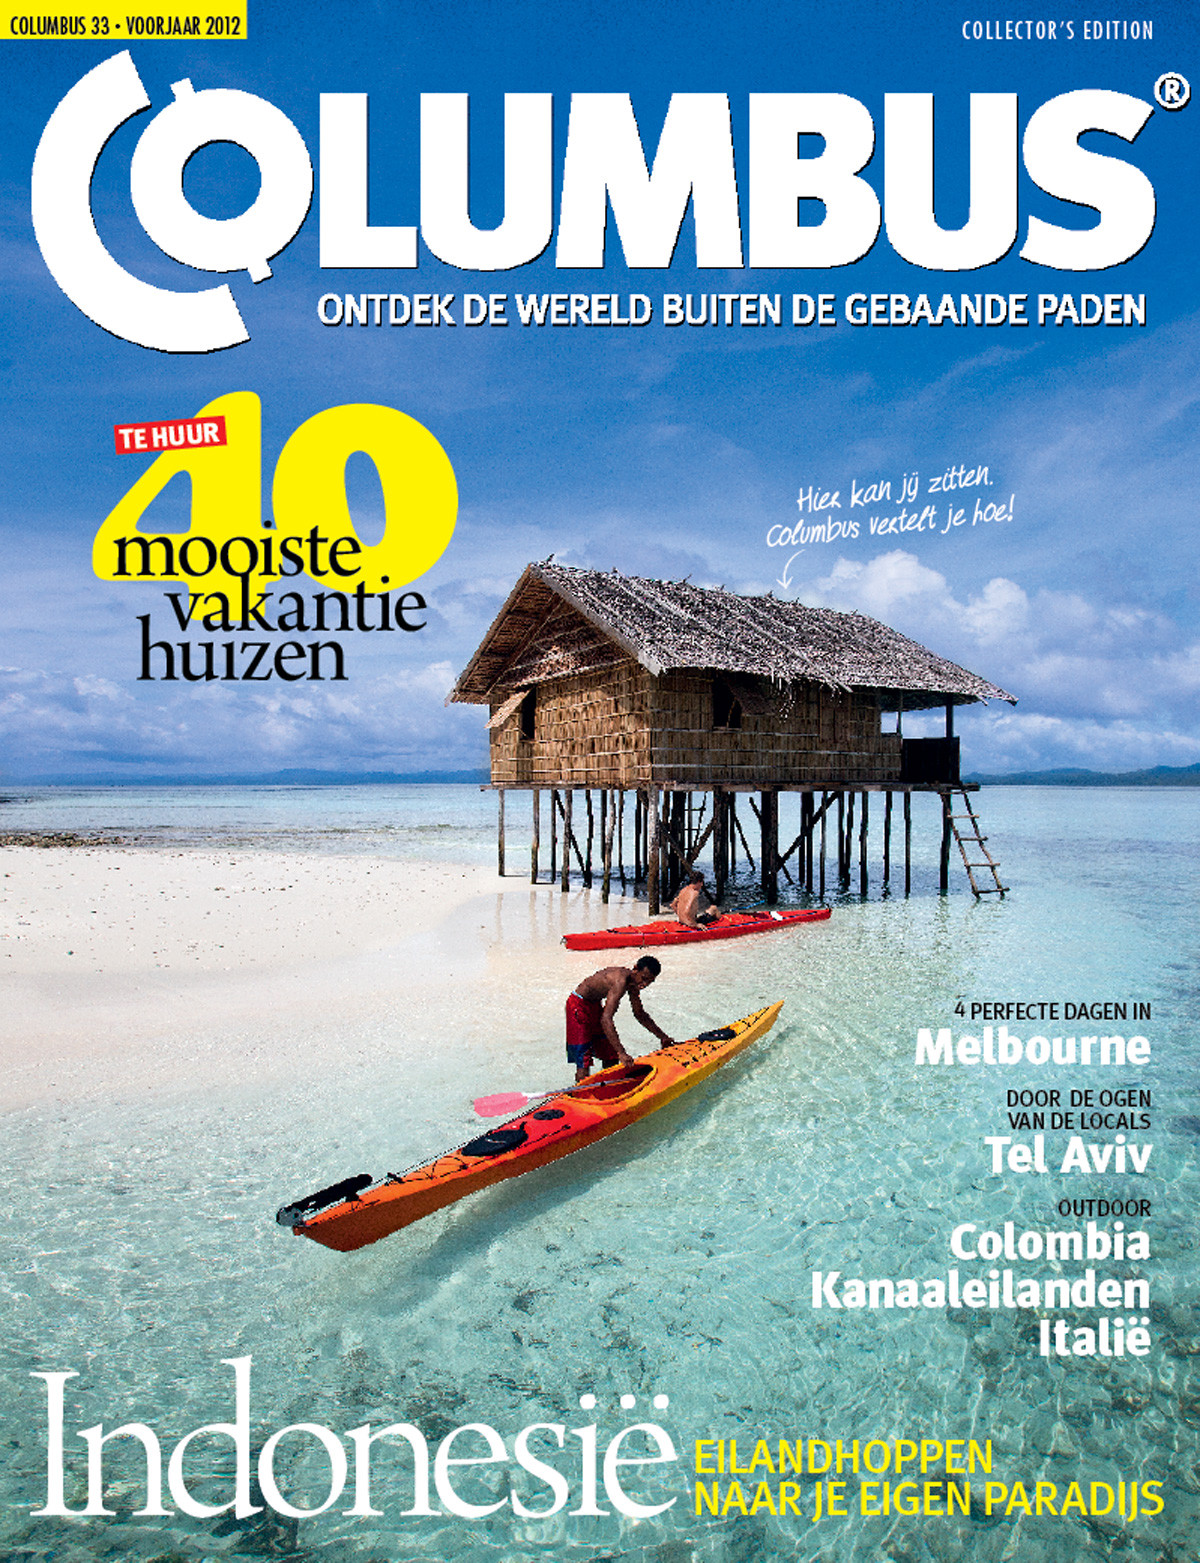 Columbus Travel magazine cover 33